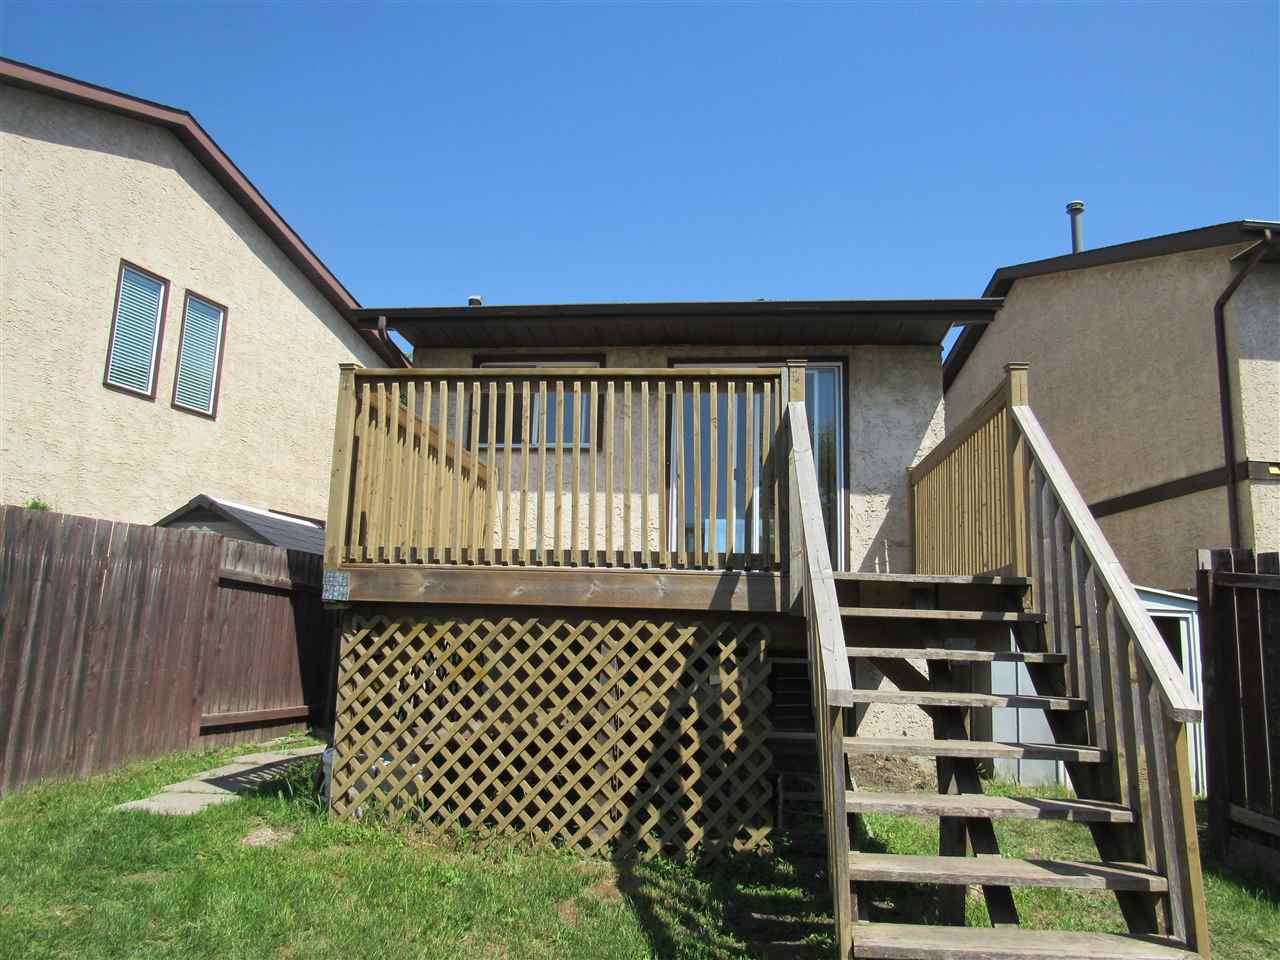 Photo 23: 3658 43A Avenue in Edmonton: Zone 29 House for sale : MLS(r) # E4072229